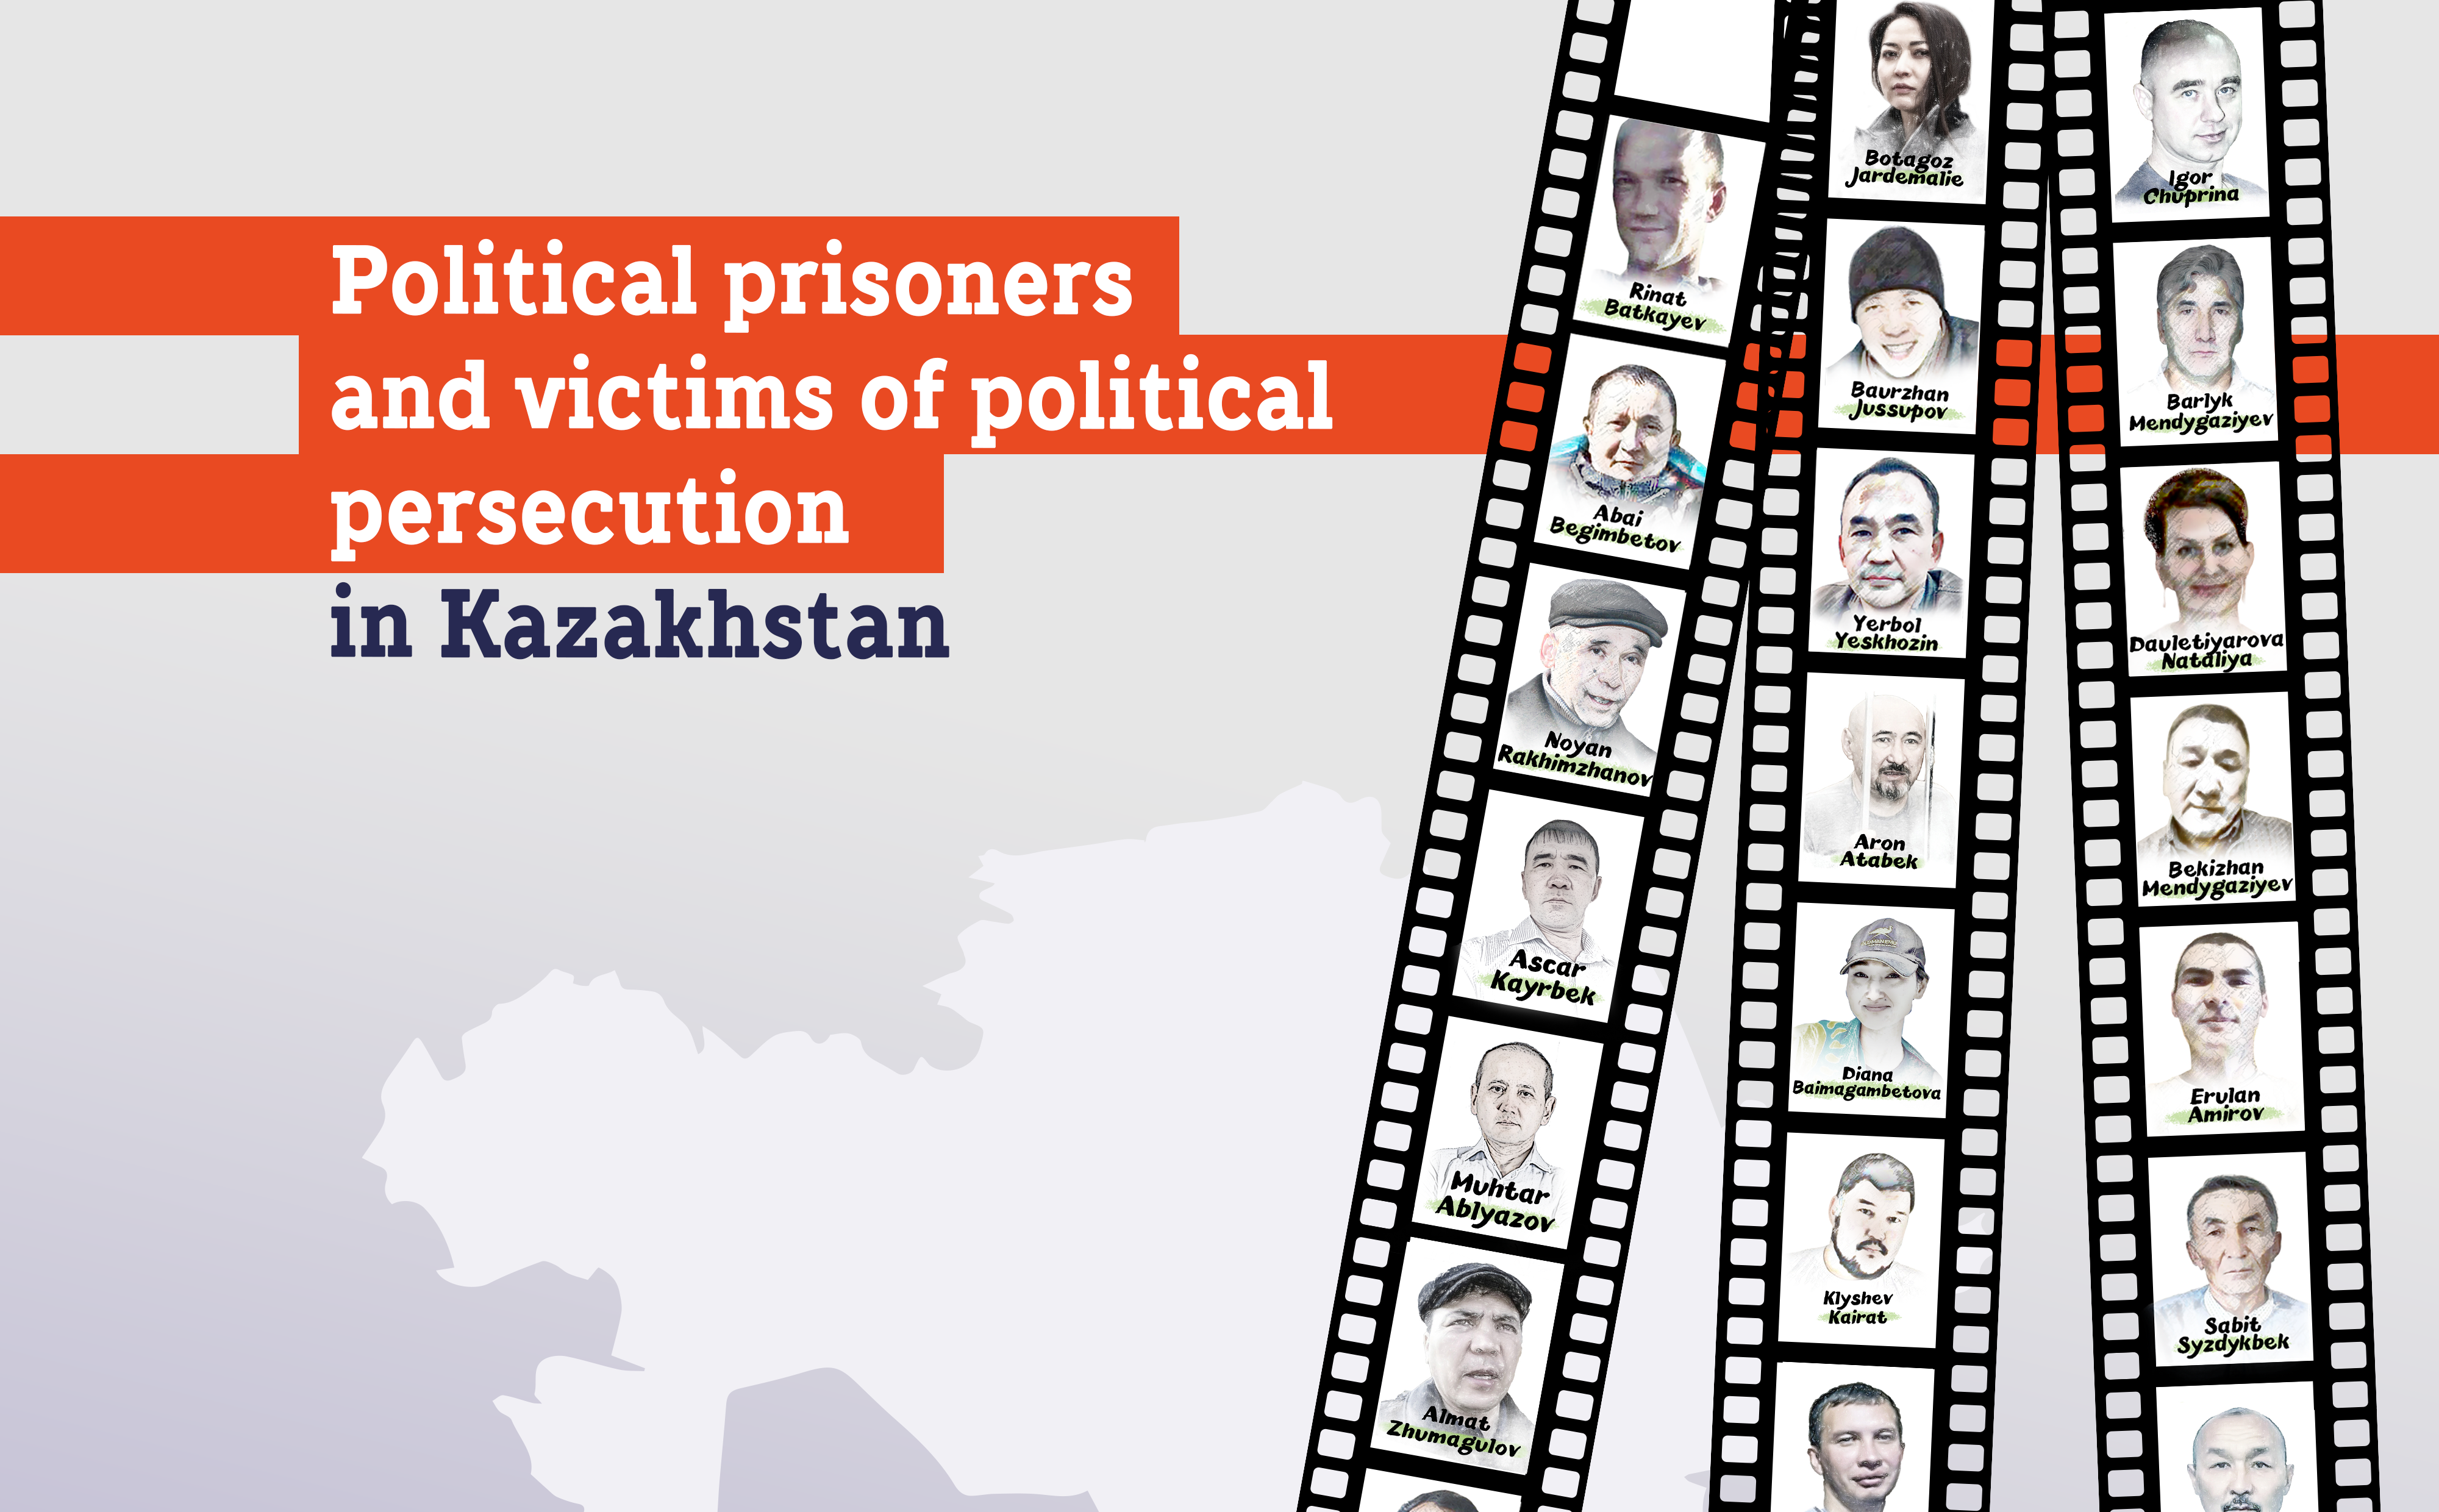 Political prisoners and victims of political persecution in Kazakhstan